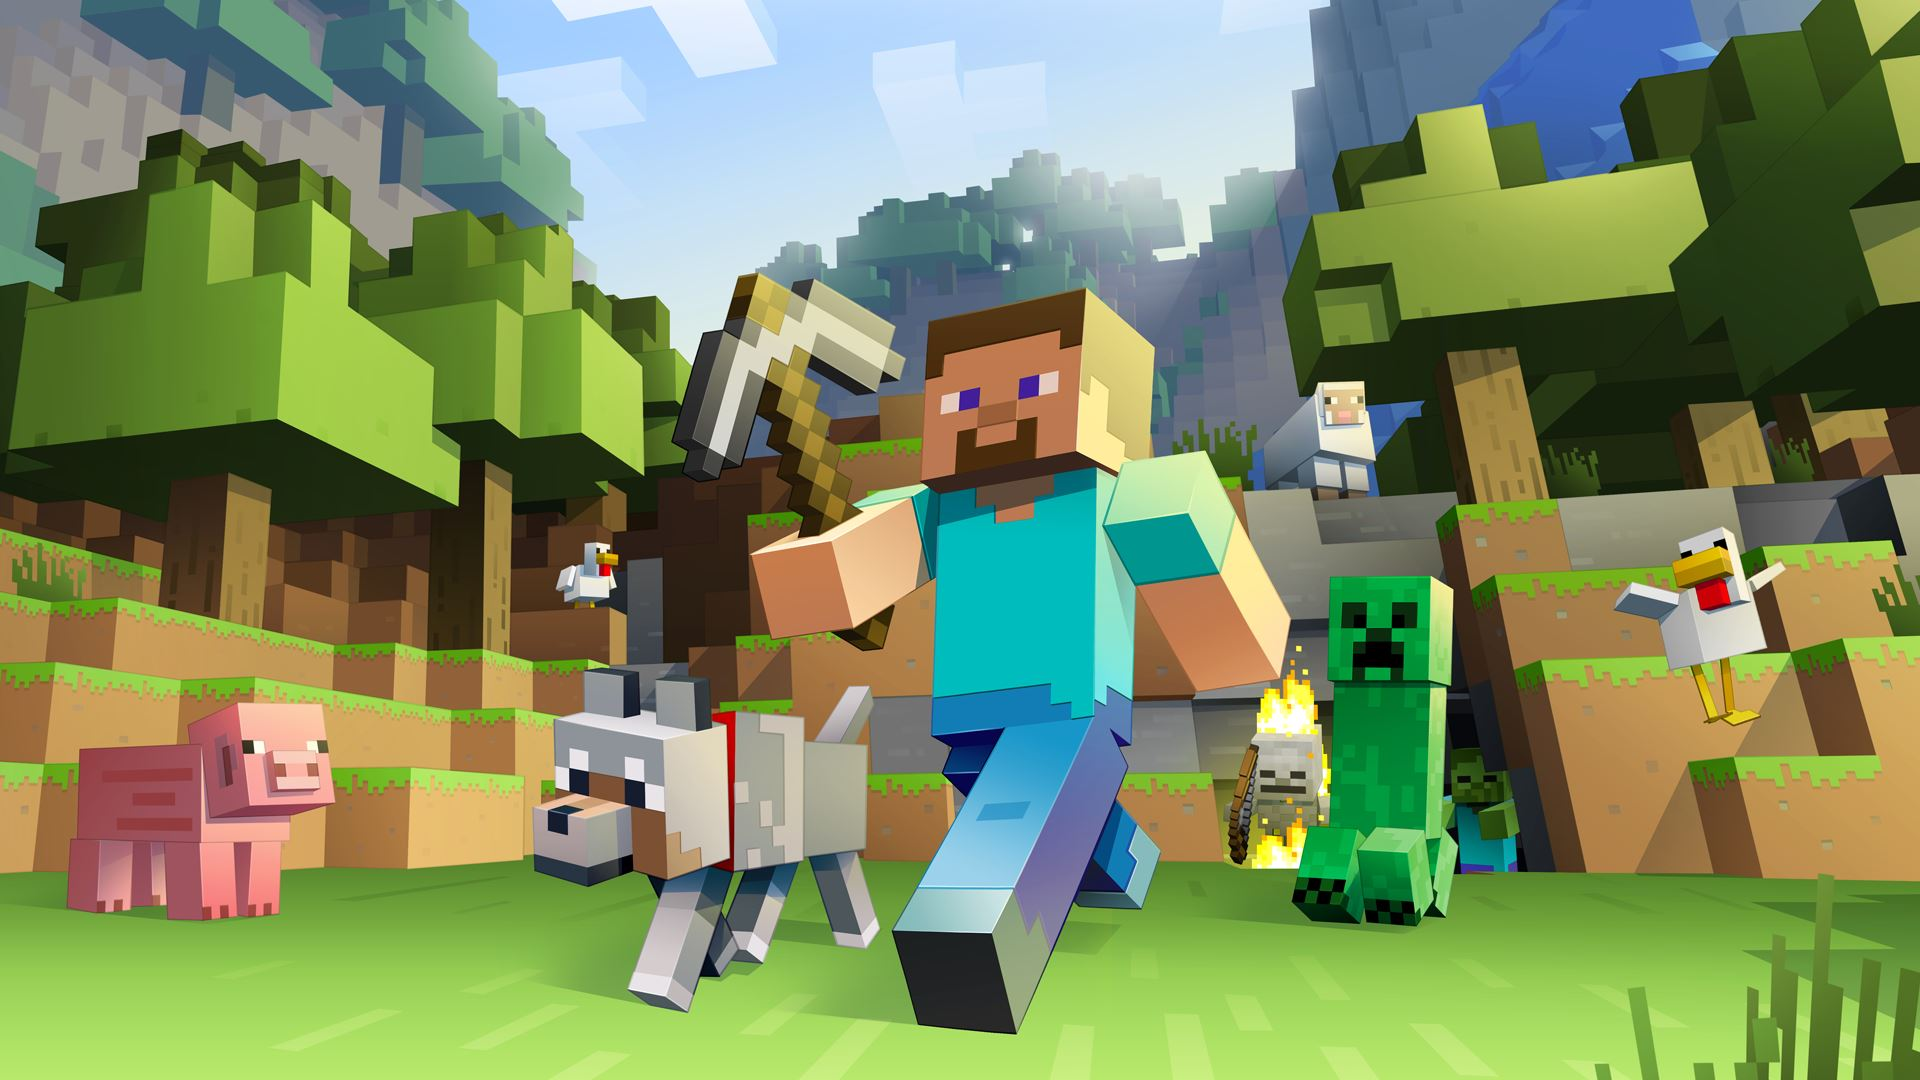 Minecraft Being Kind When Discussing Gamification